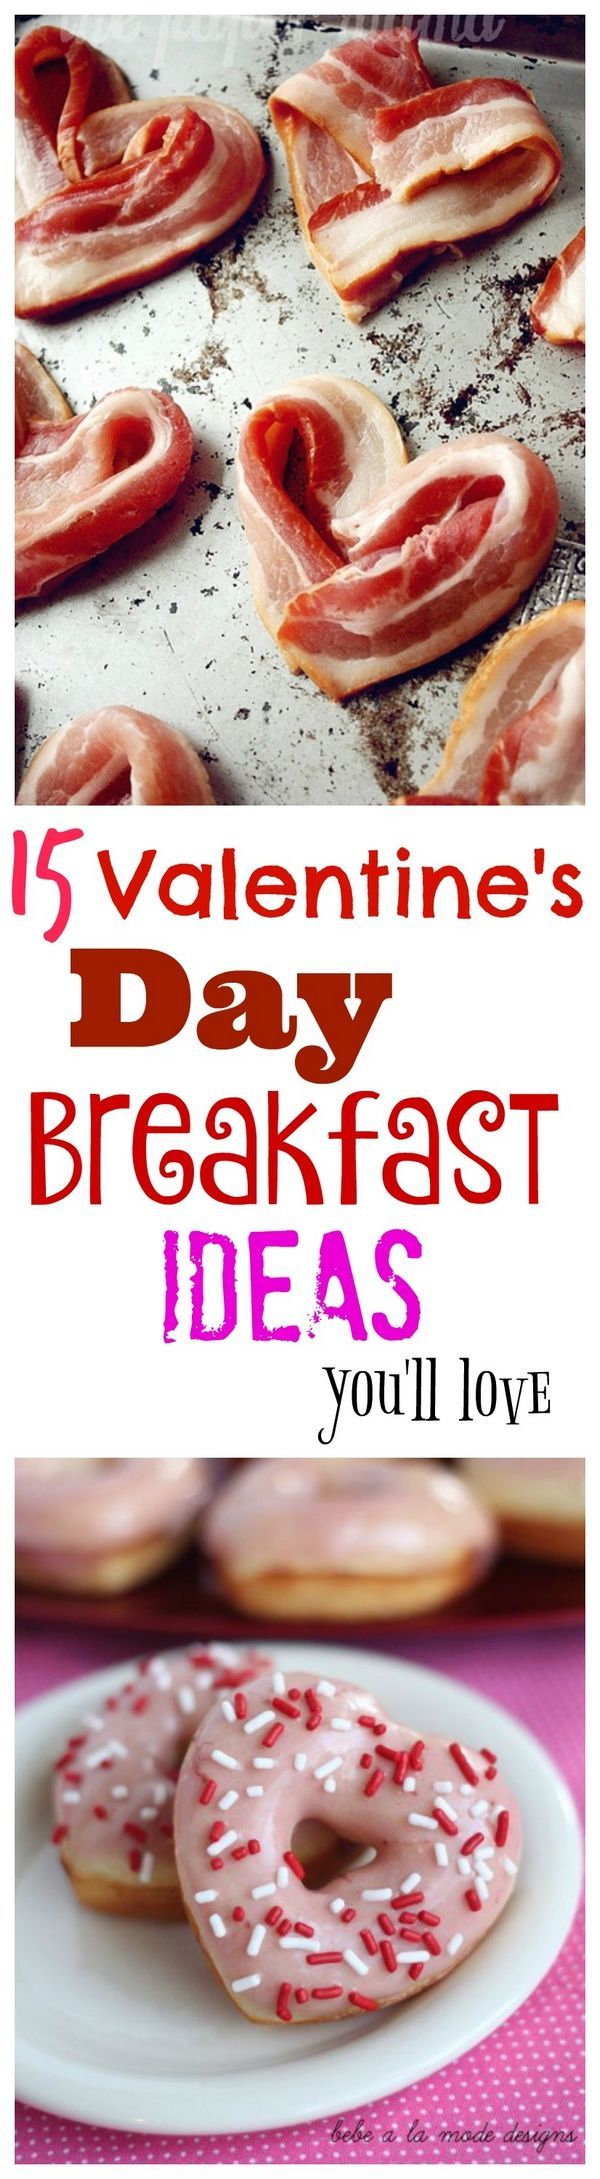 15 Valentine's Day Breakfast Ideas You'll Enjoy Making for Your Family.